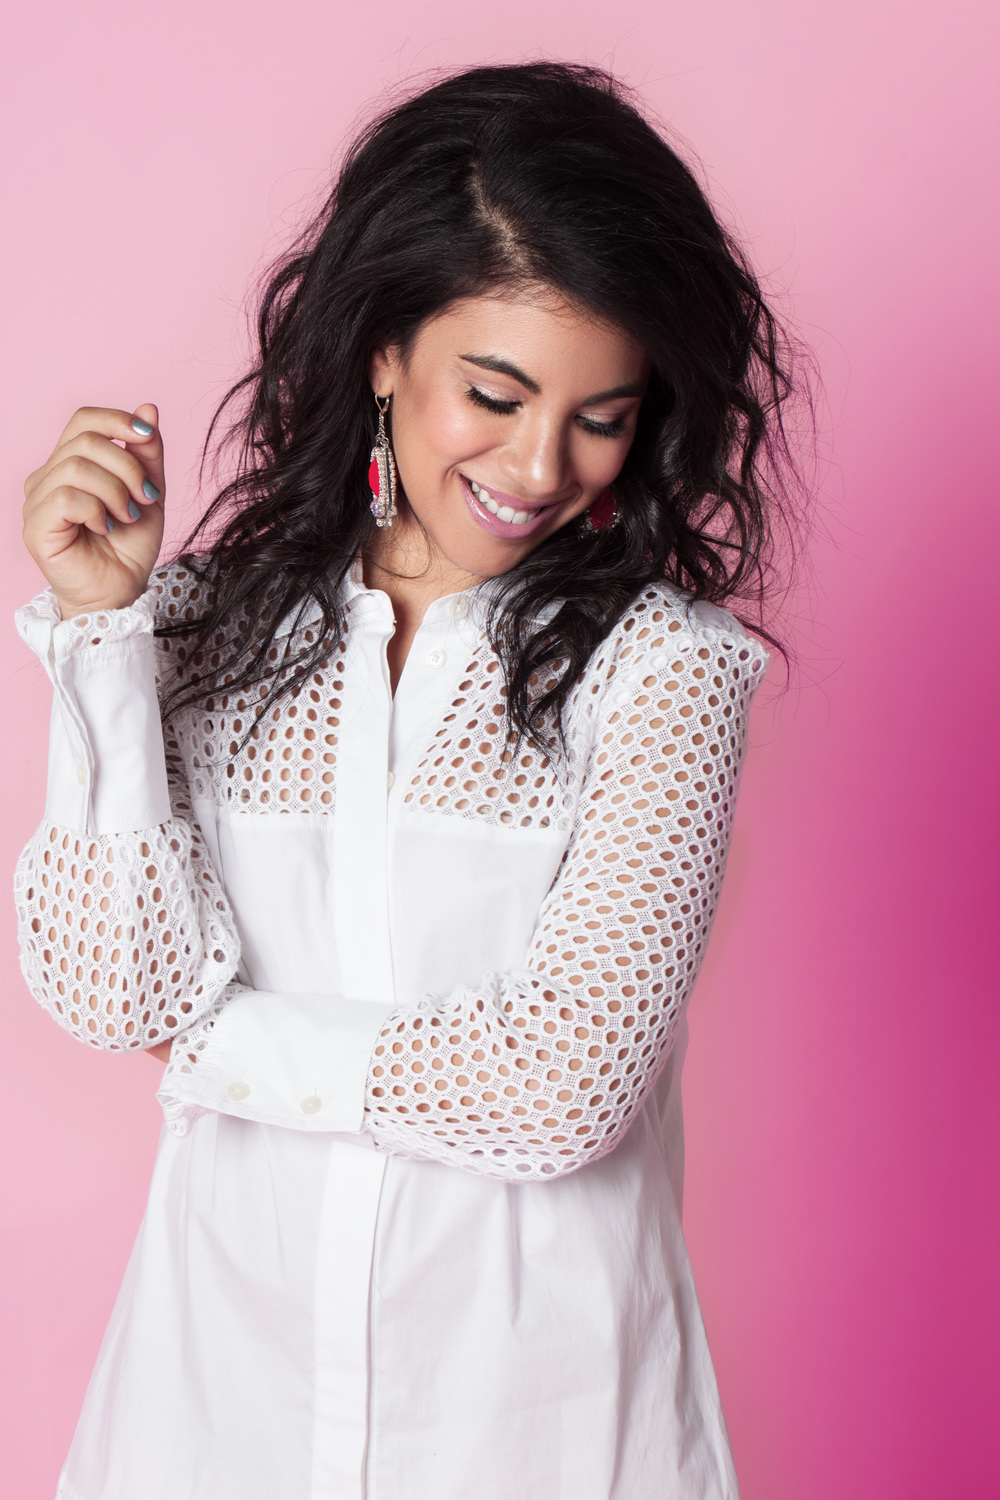 Chrissie Fit - Pitch Perfect 2